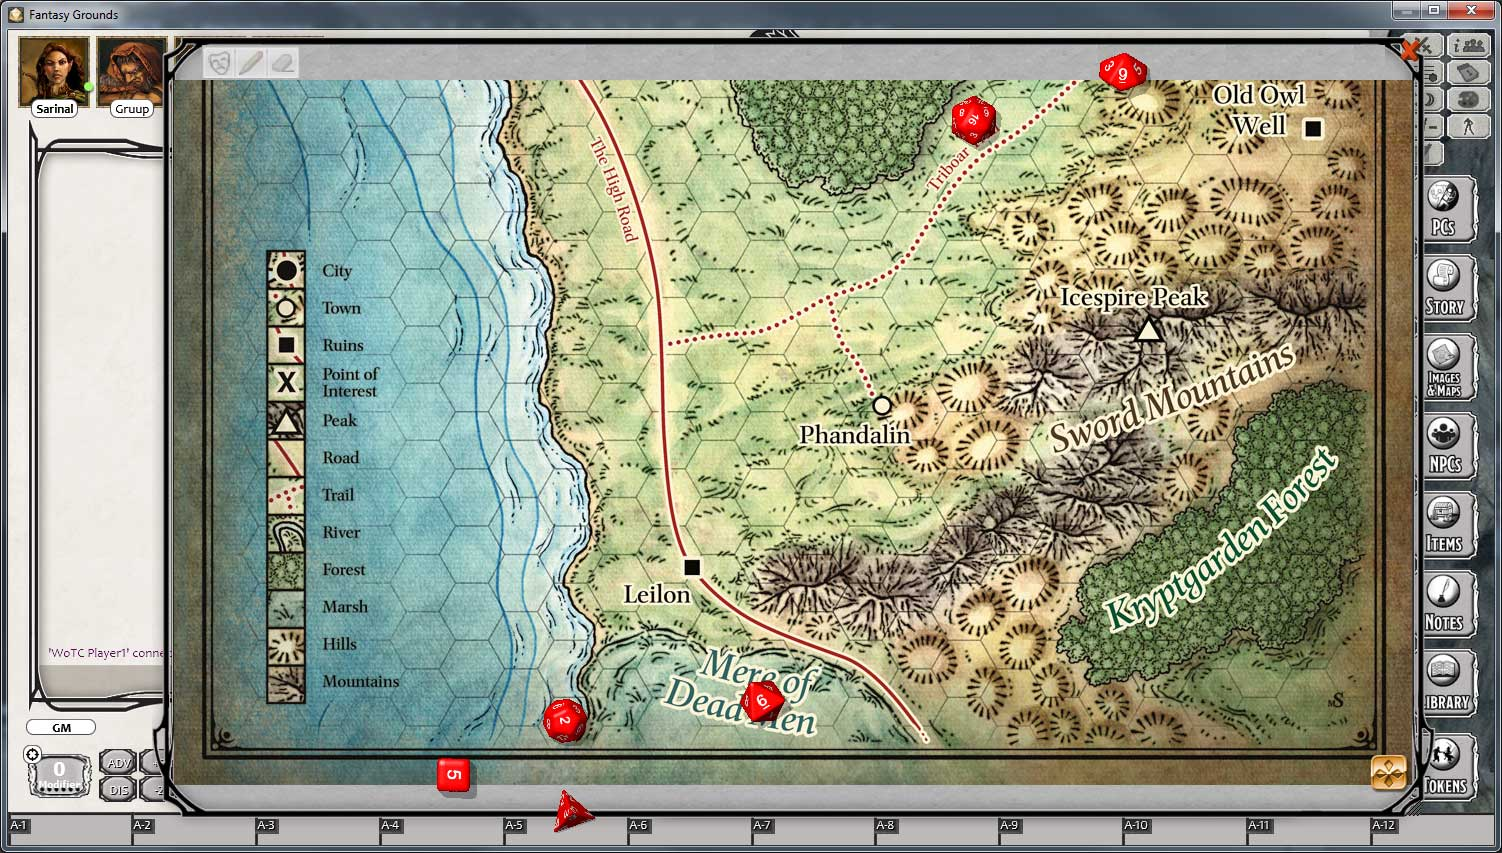 D&D Lost Mine of Phandelver for Fantasy Grounds